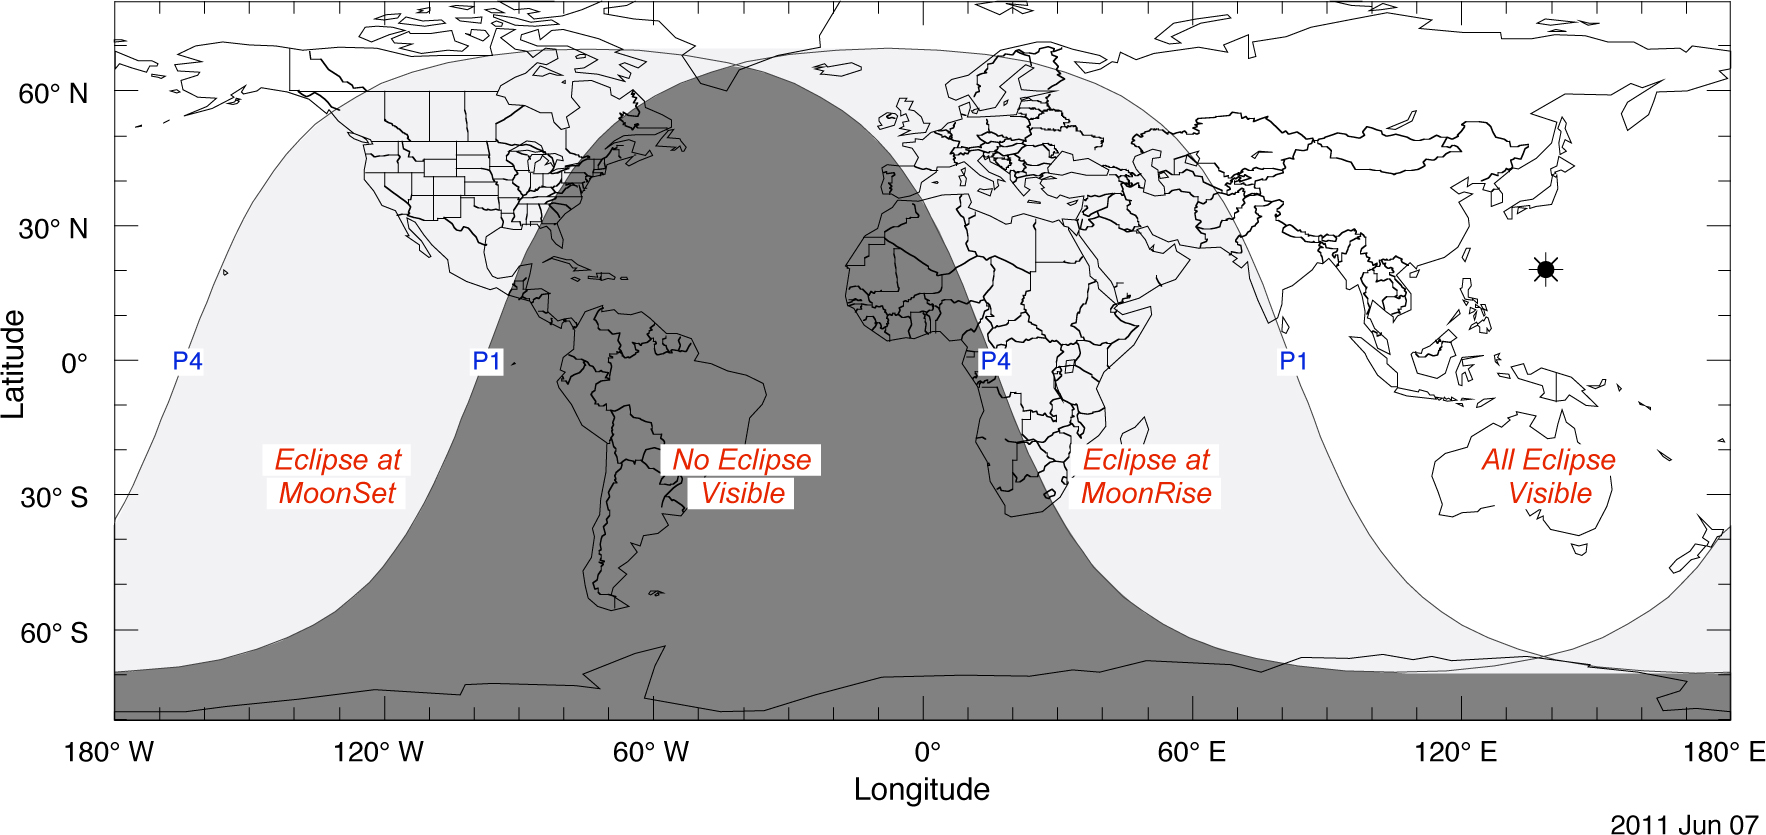 Penumbral Lunar Eclipse Visibility Map